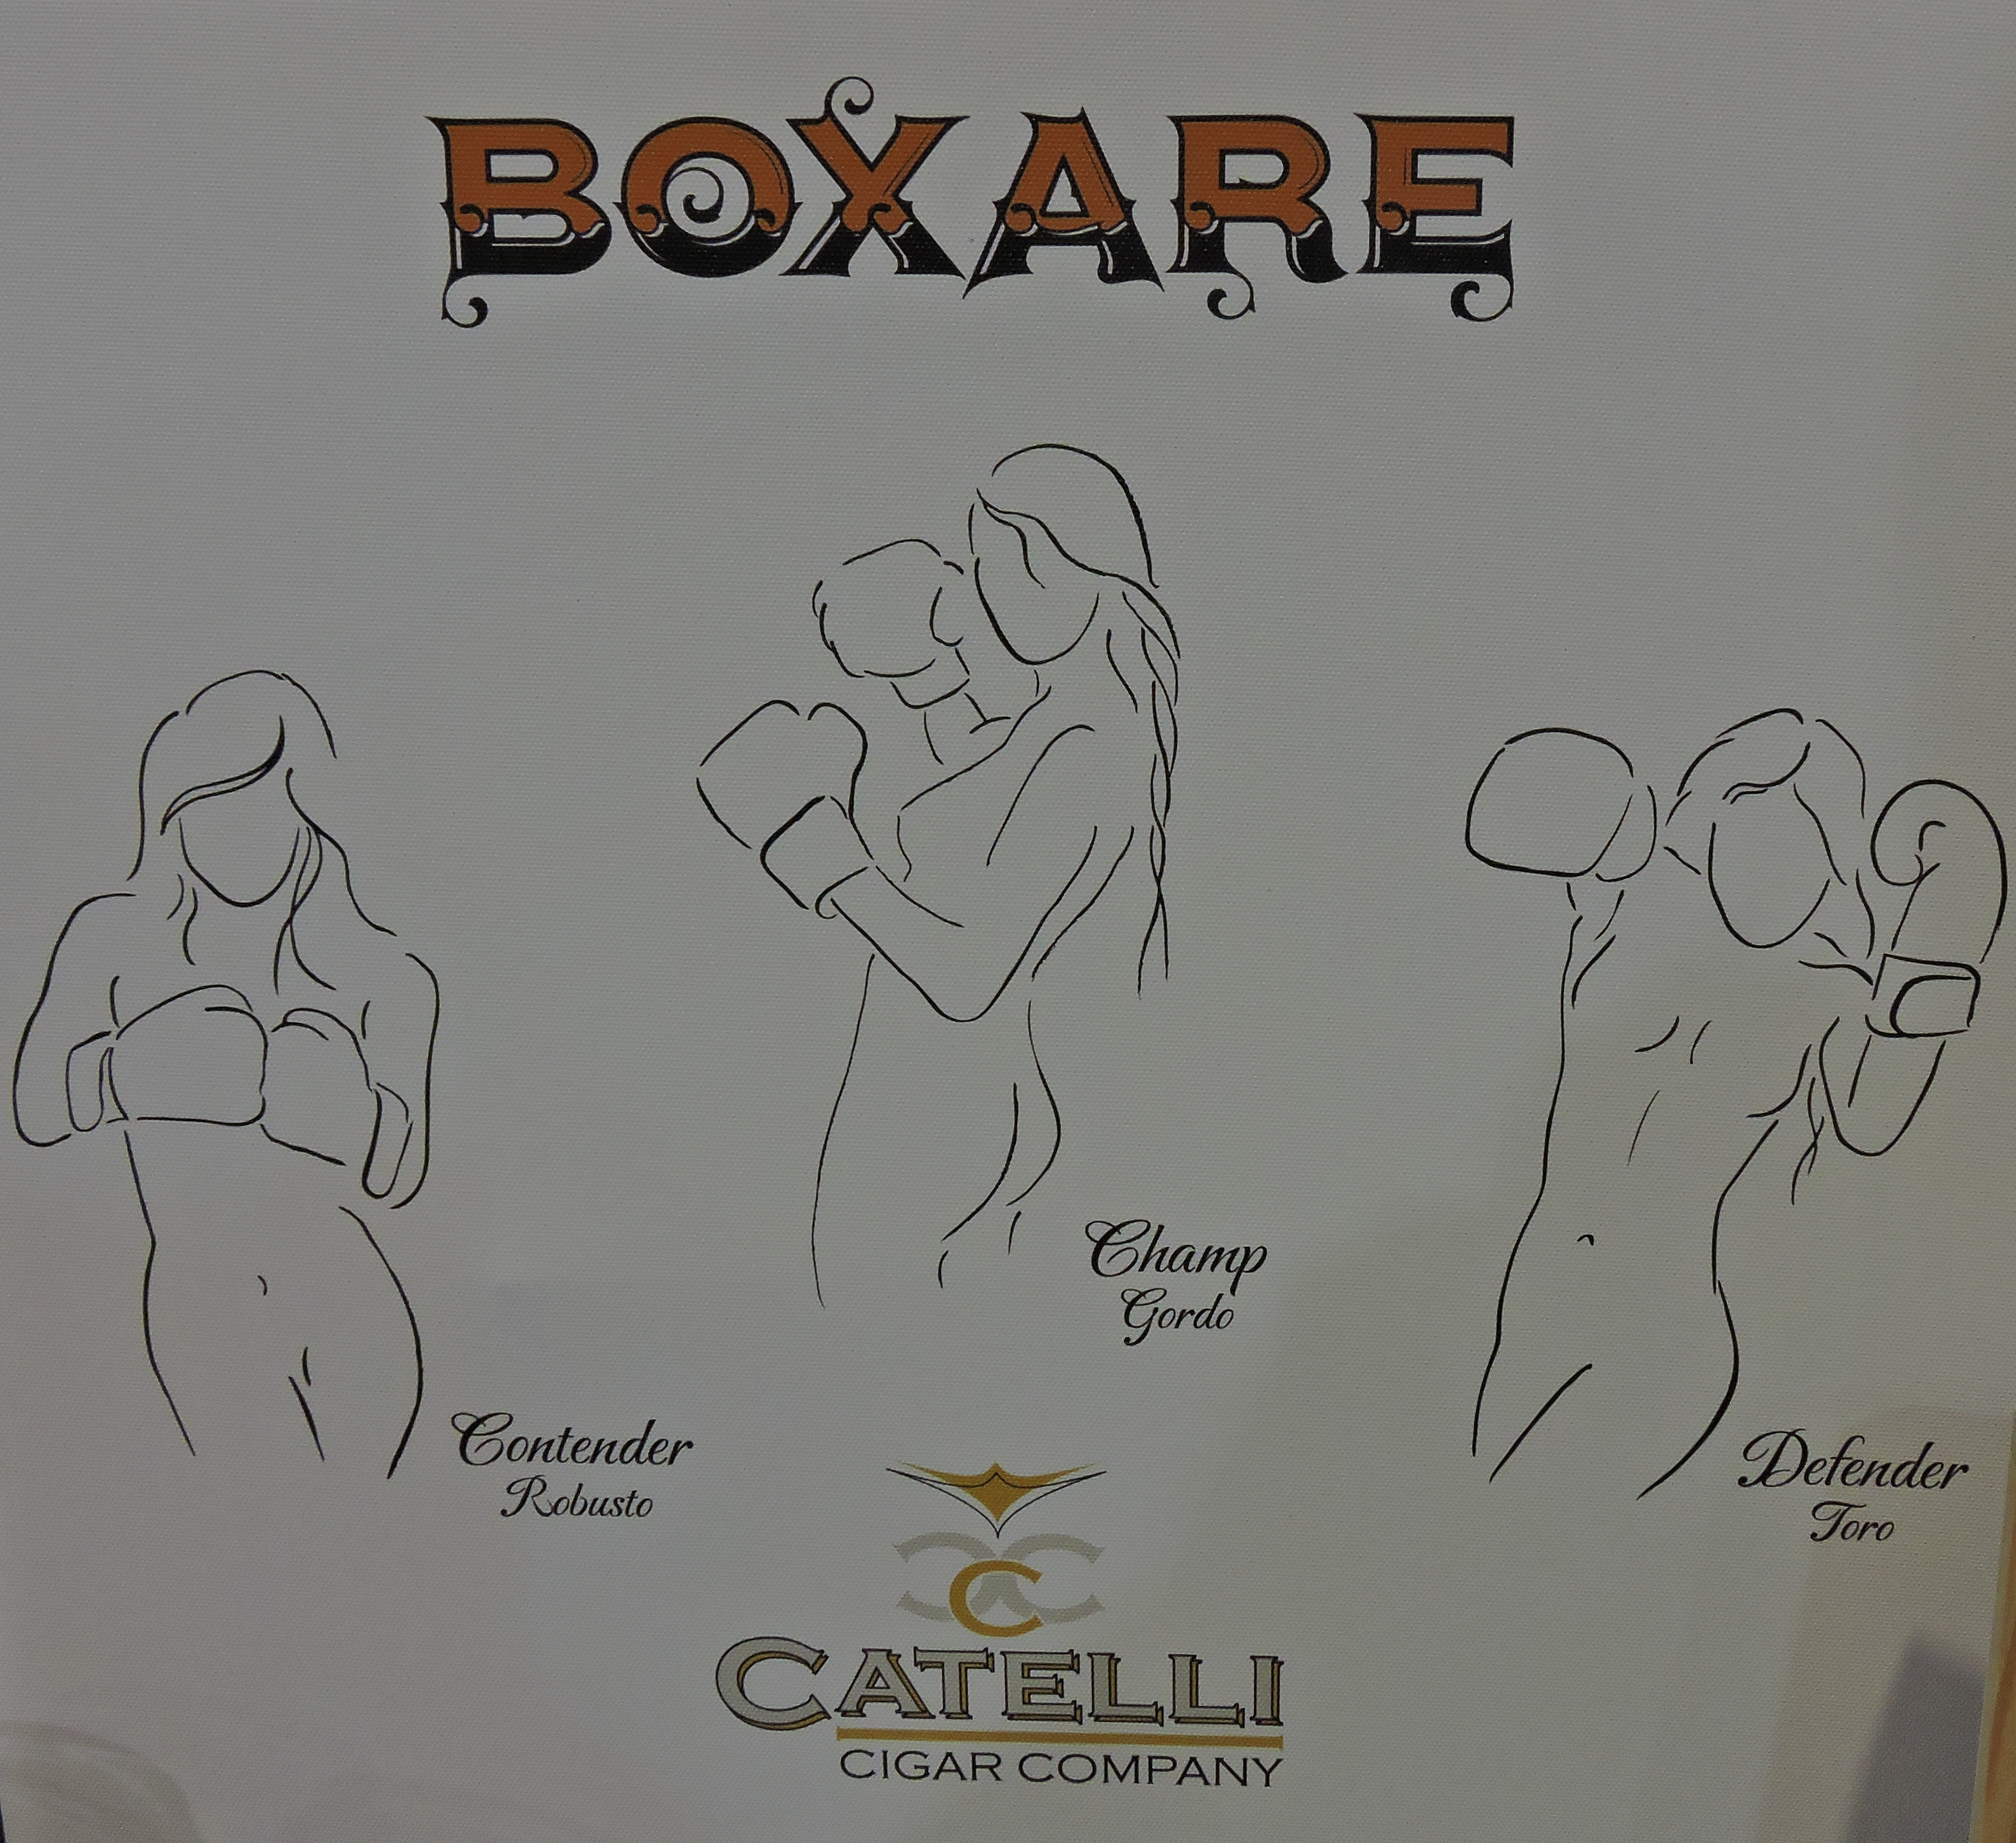 Cigar News: Catelli Boxare Launched at 2016 IPCPR Trade Show